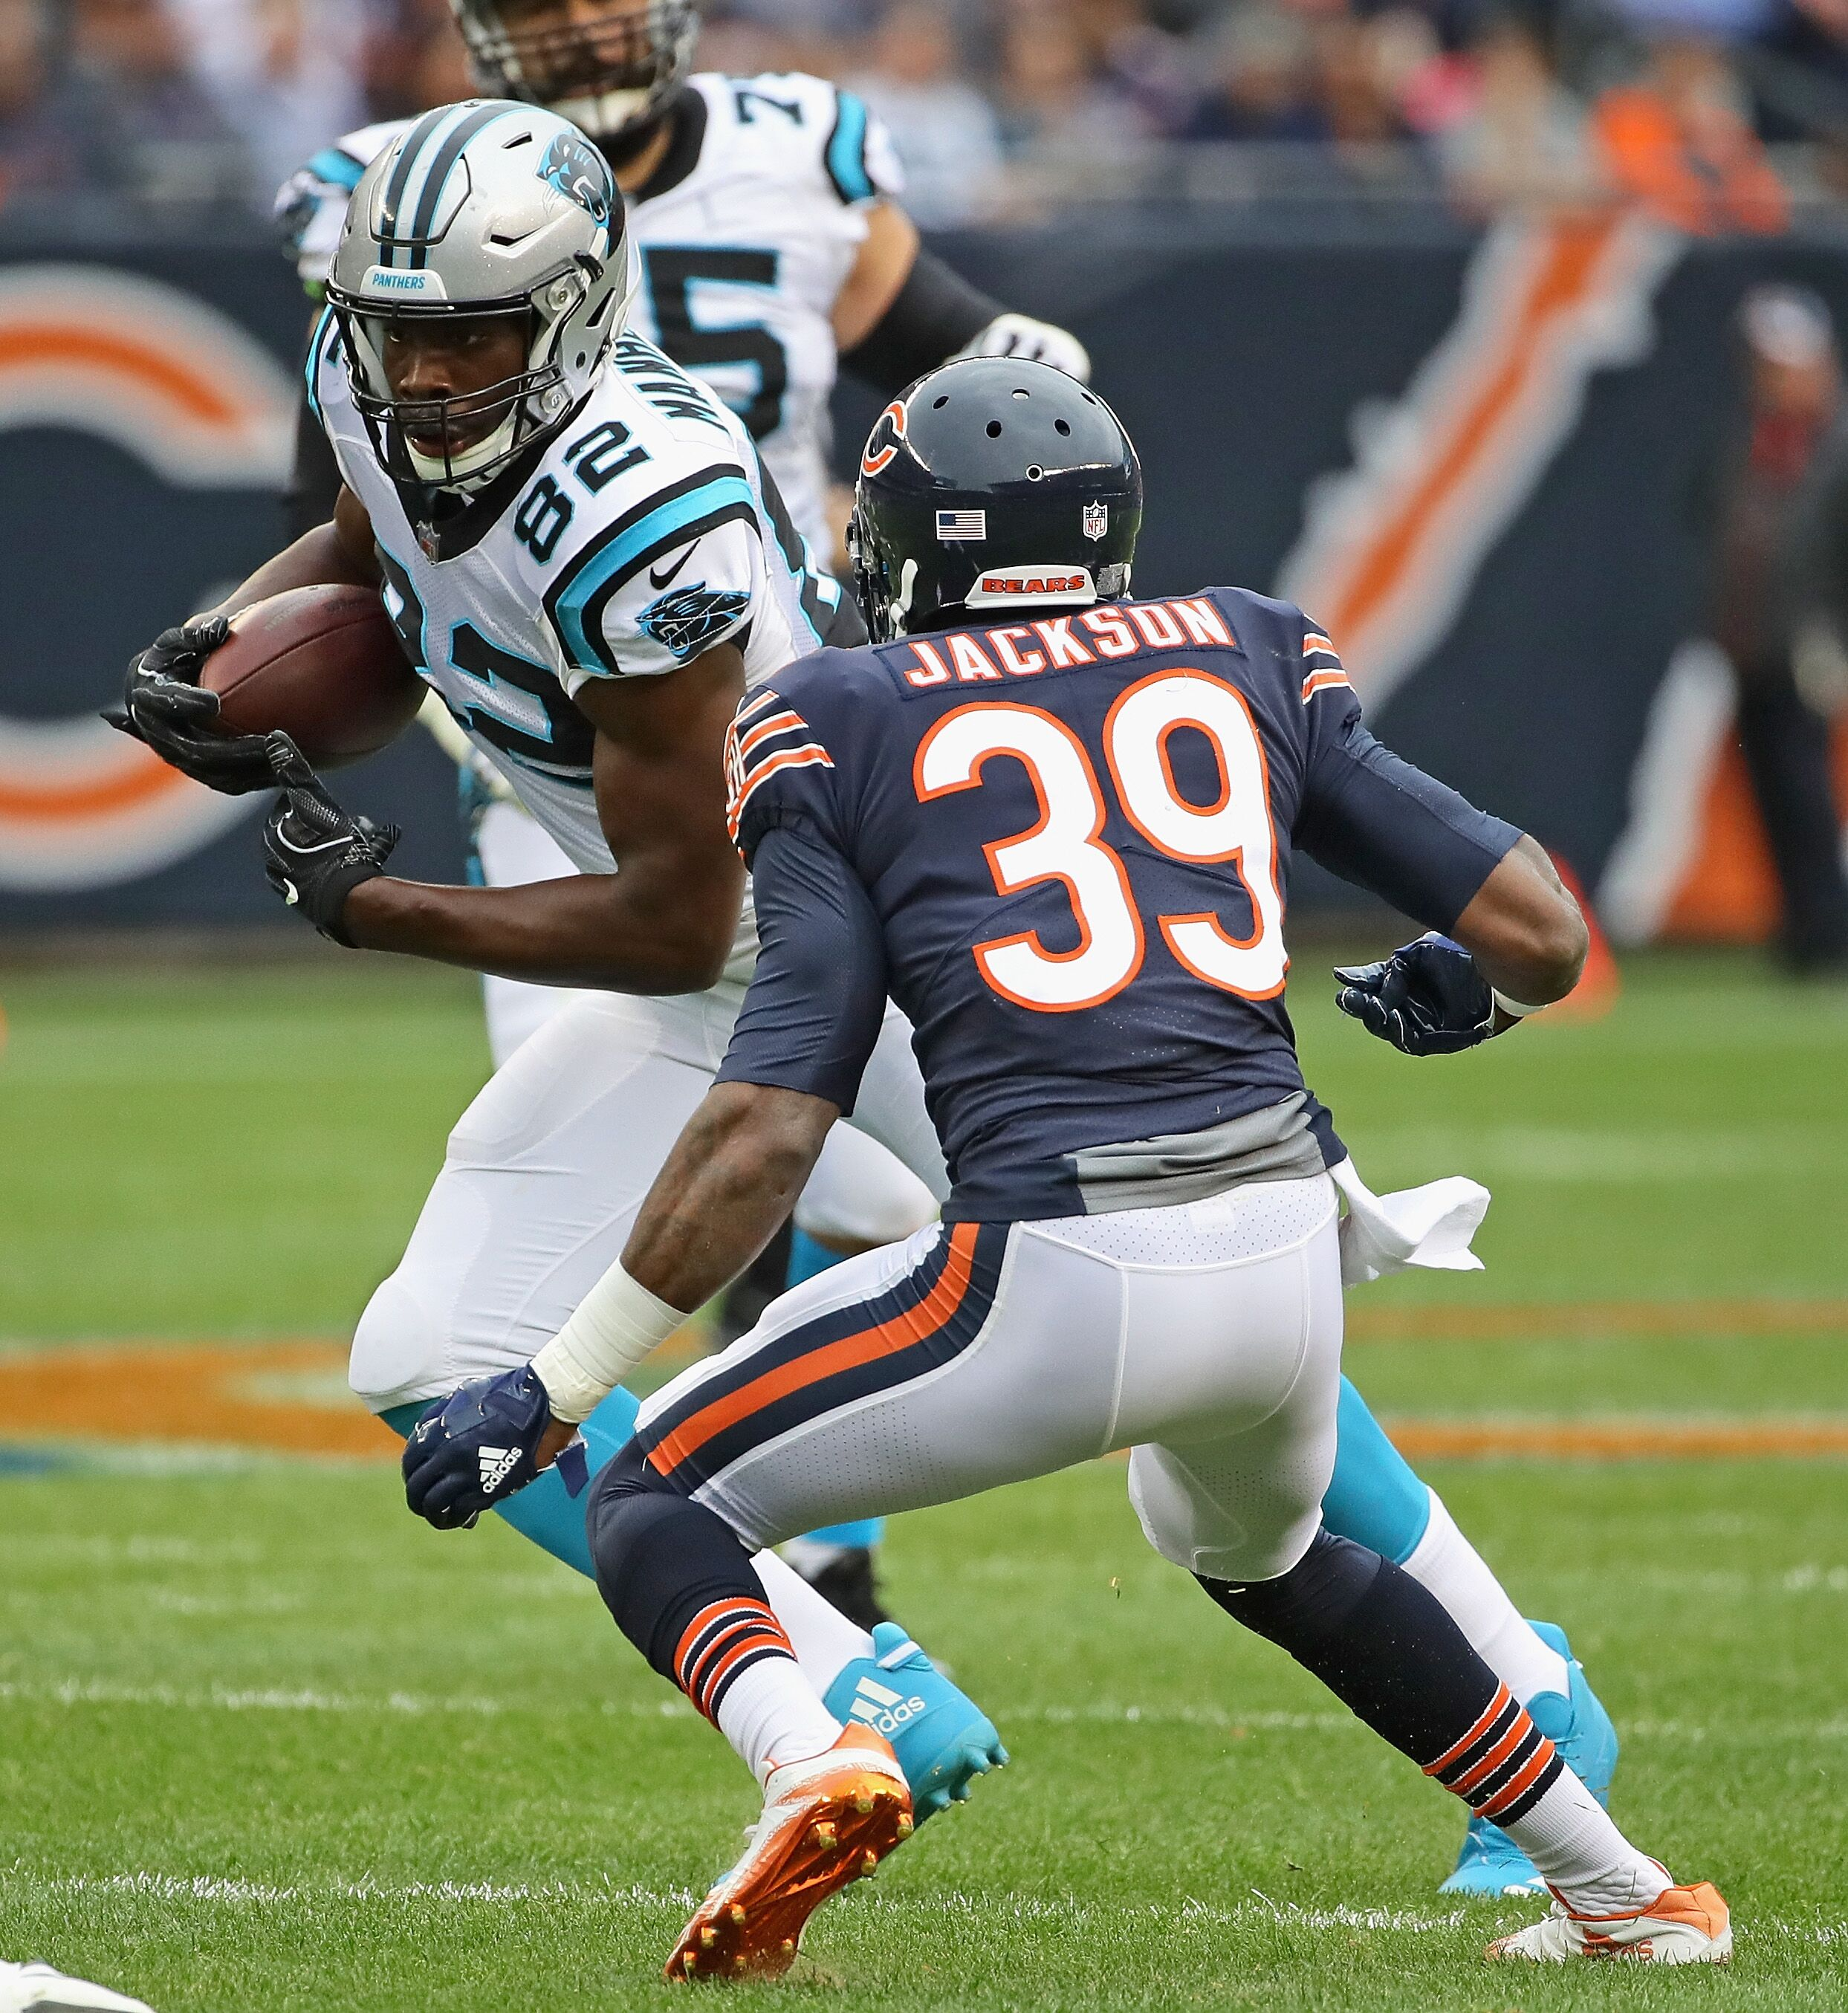 865176082-carolina-panthers-v-chicago-bears.jpg